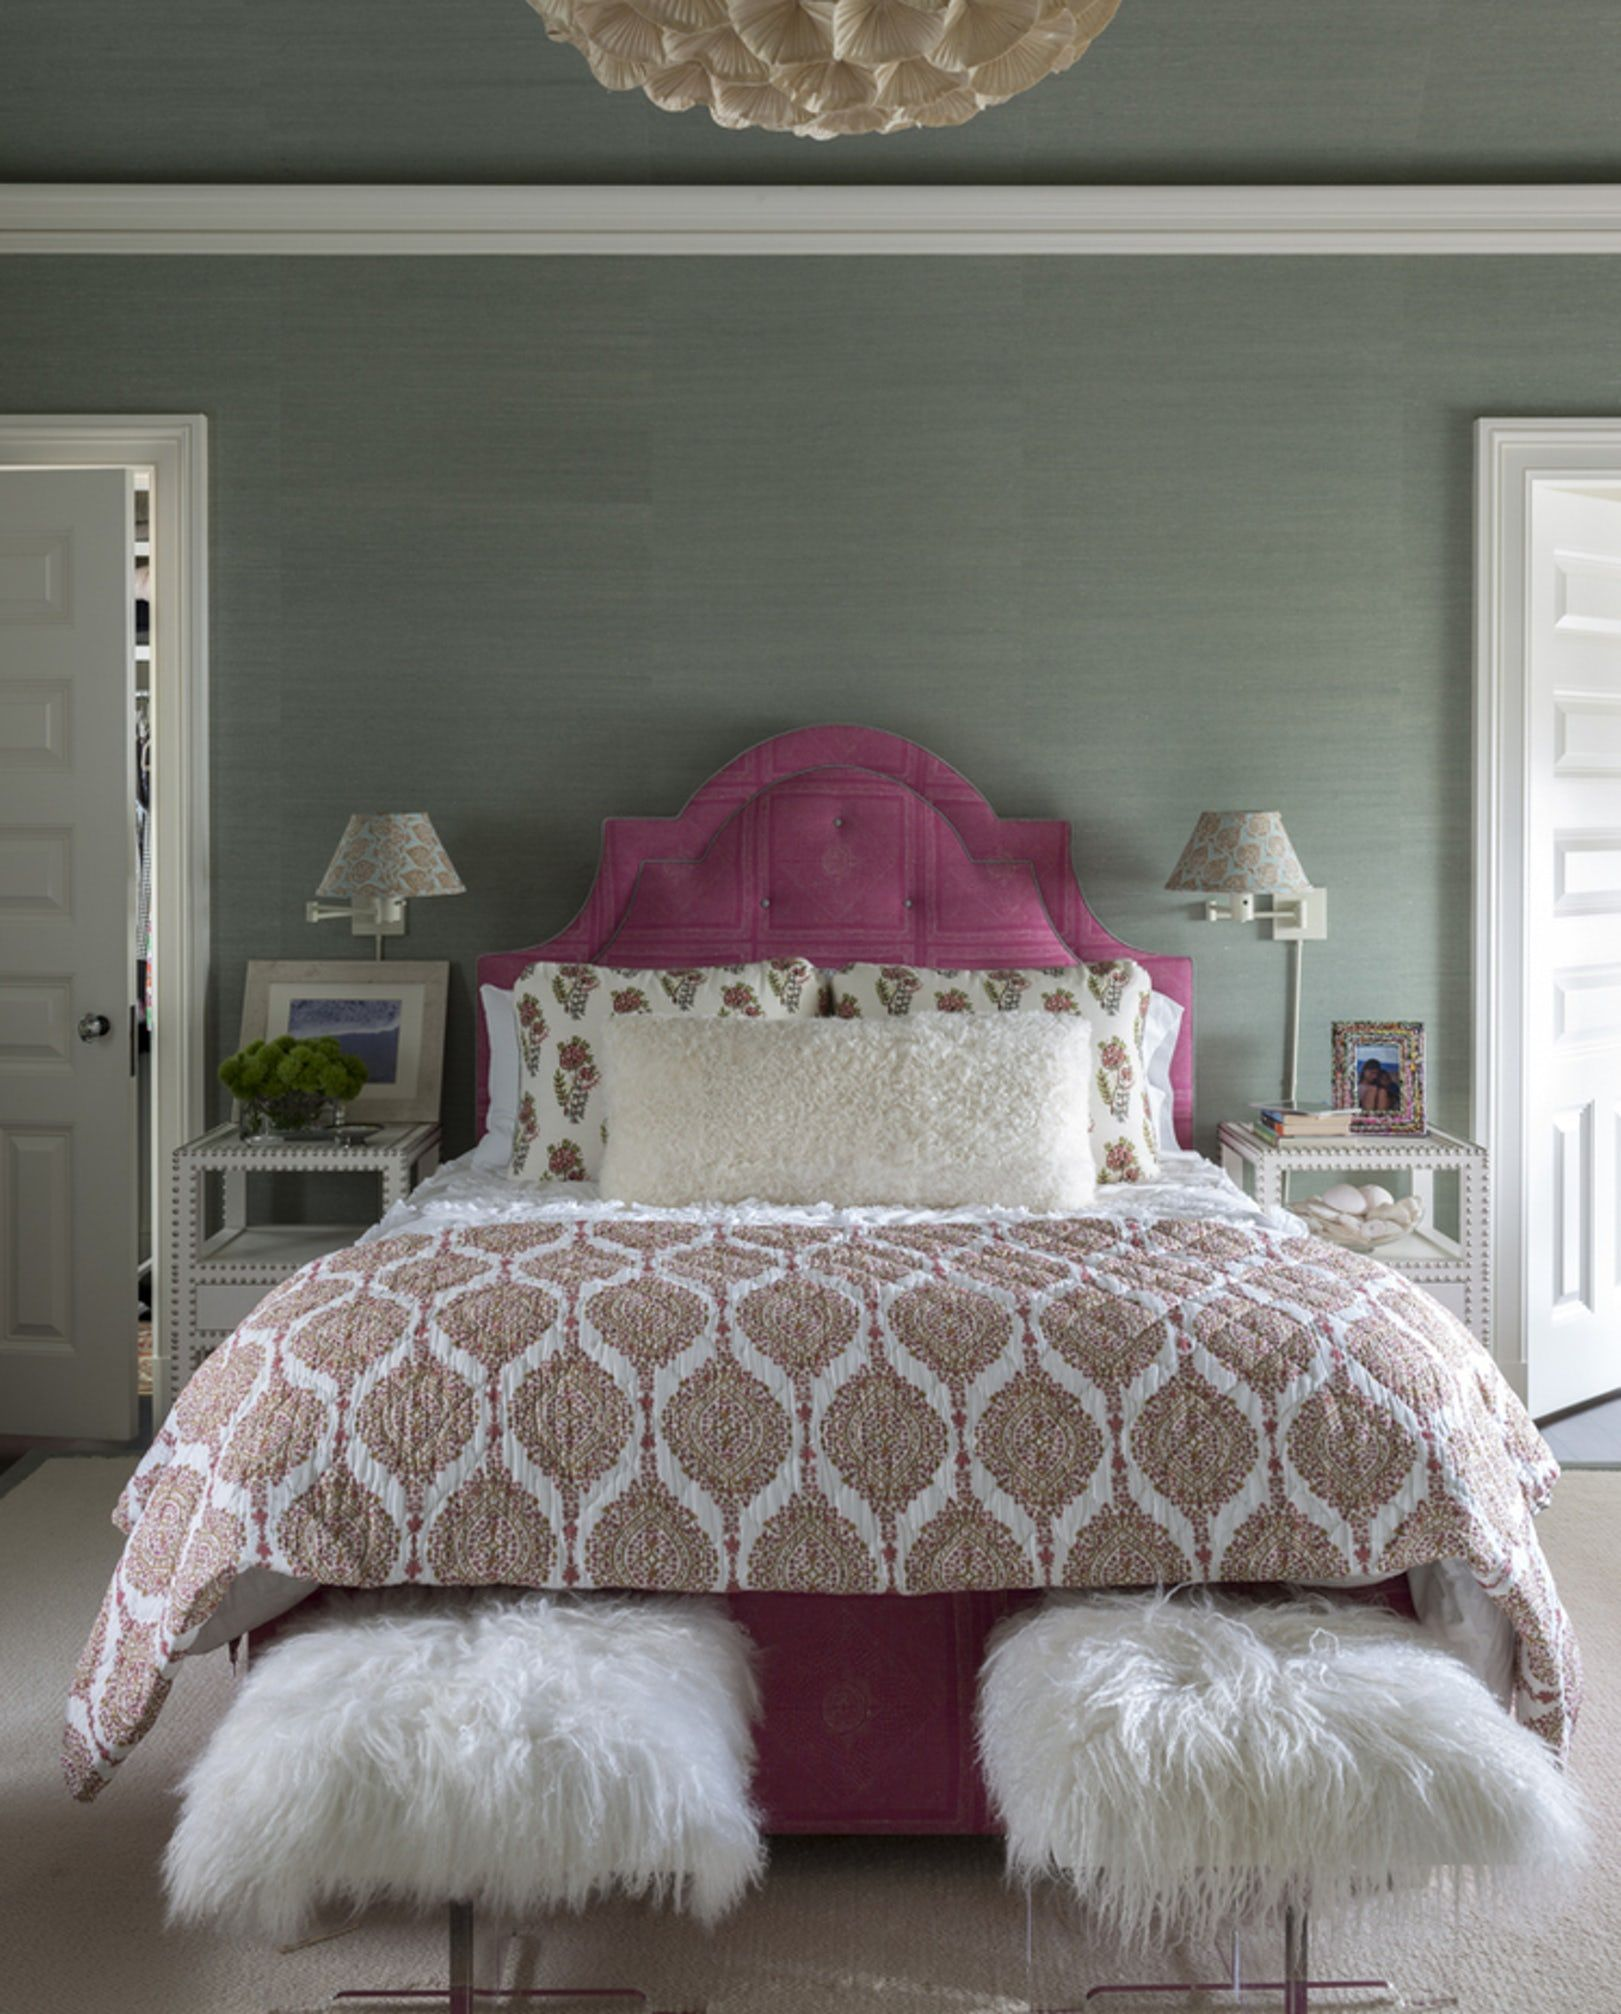 Girls Bedrooms. Design By Lee Ann Thornton Interiors